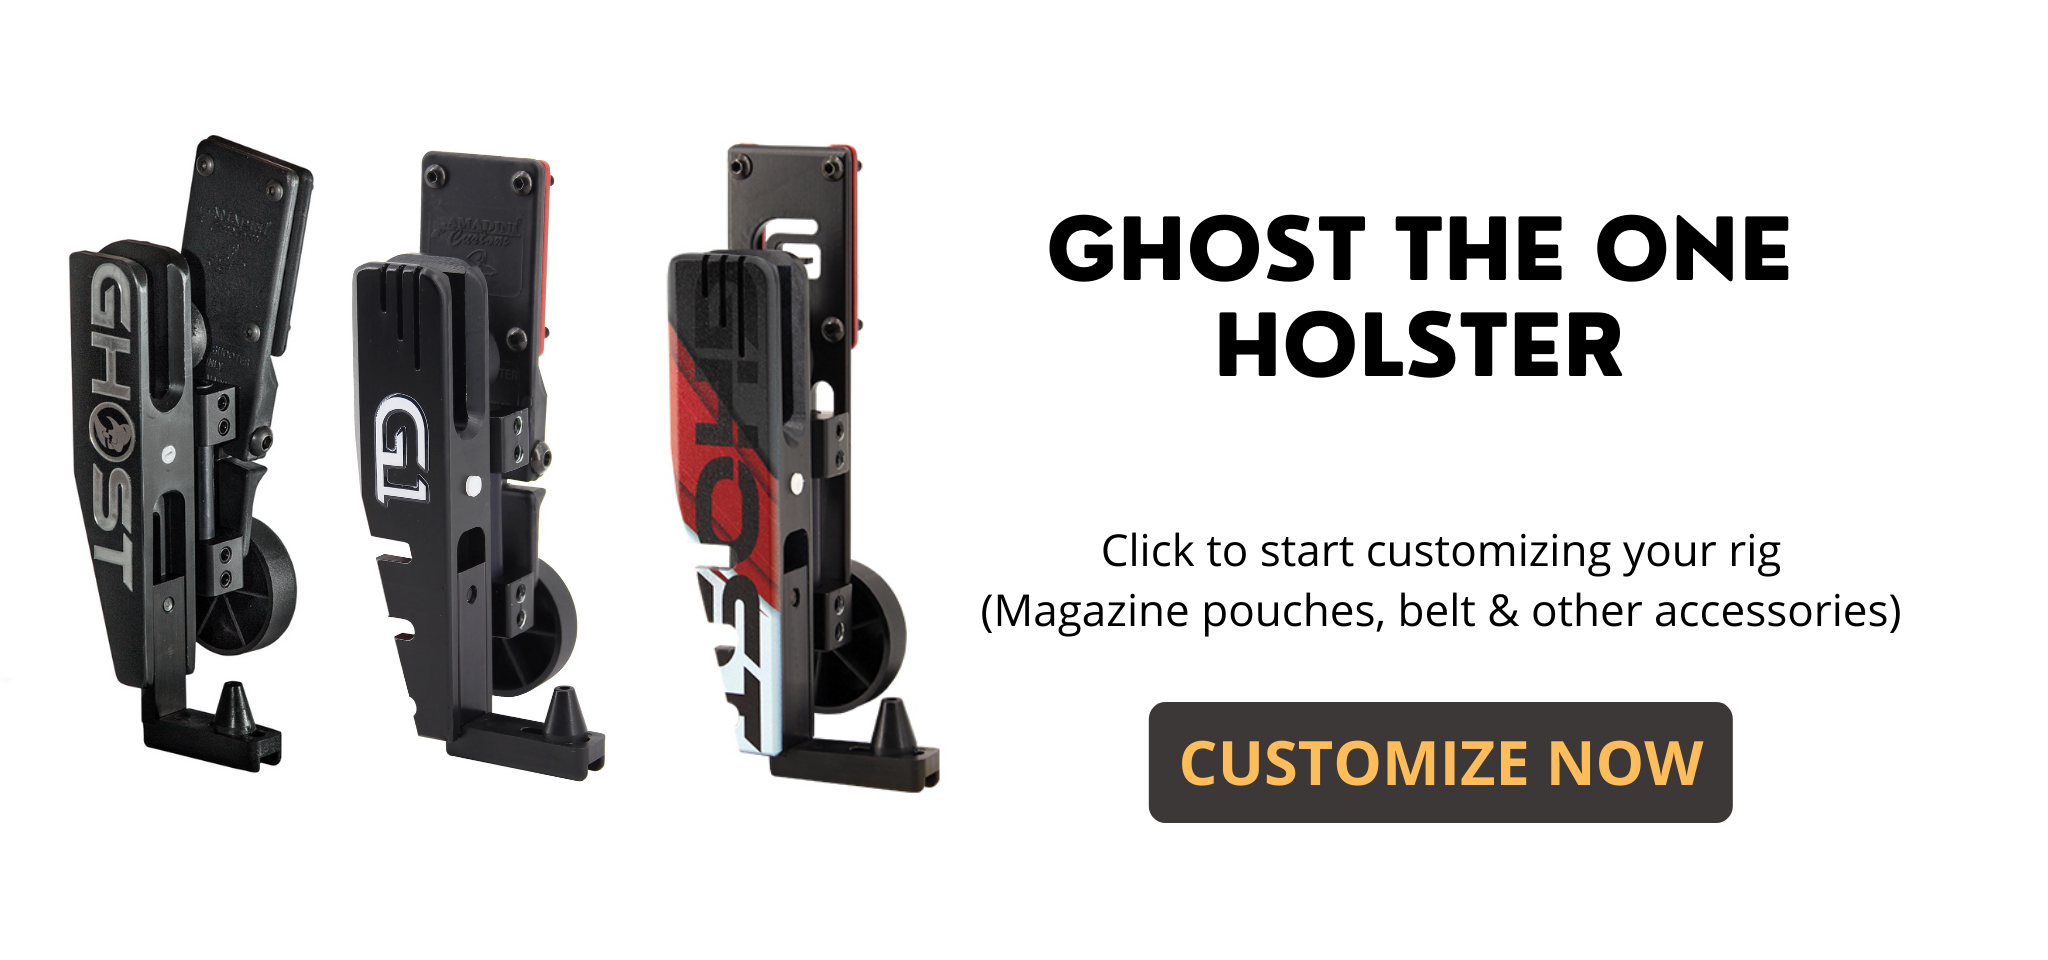 Ghost The One Holster - Speededge